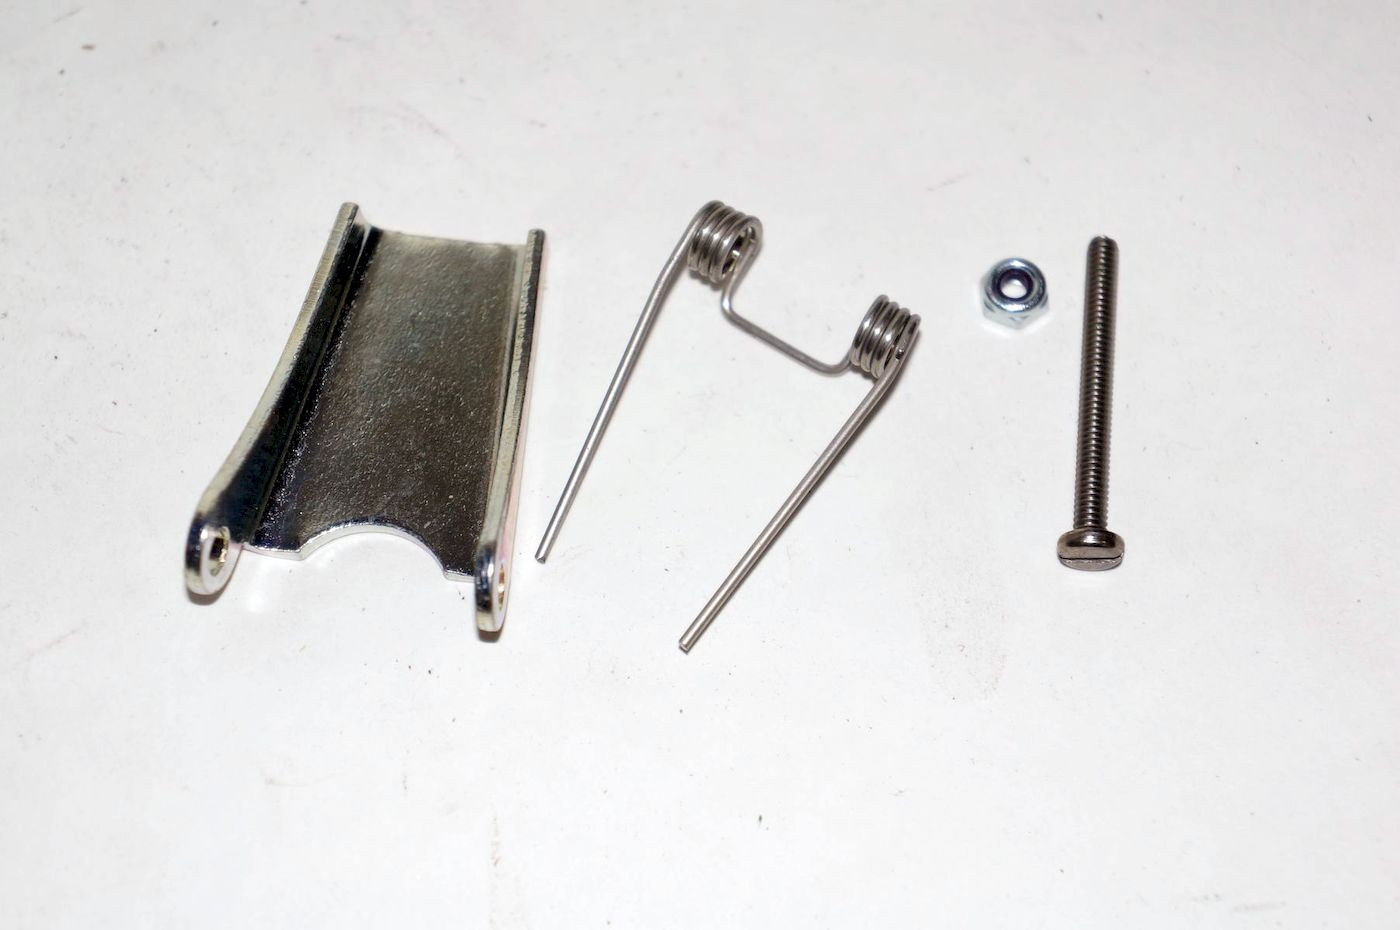 45661 - CM LATCH KIT #4 / VARIOUS HOISTS